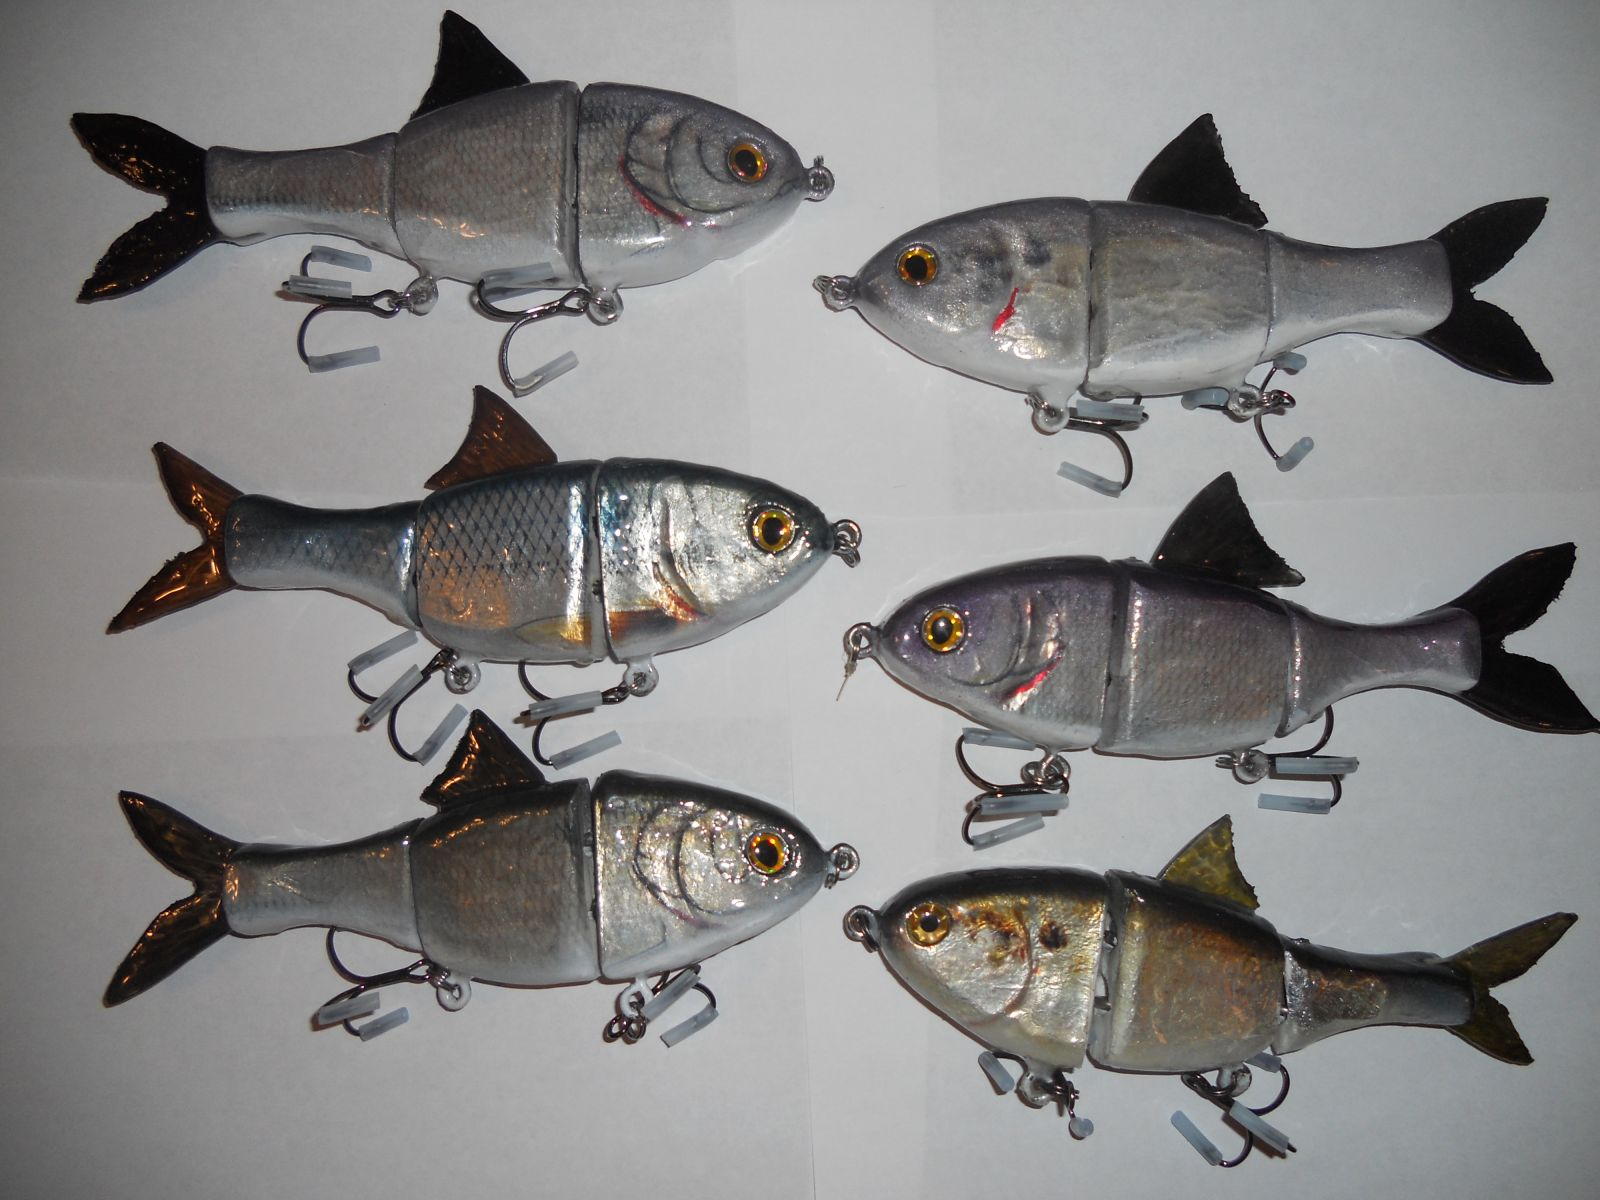 Some 7 Inch Swimbaits I have made